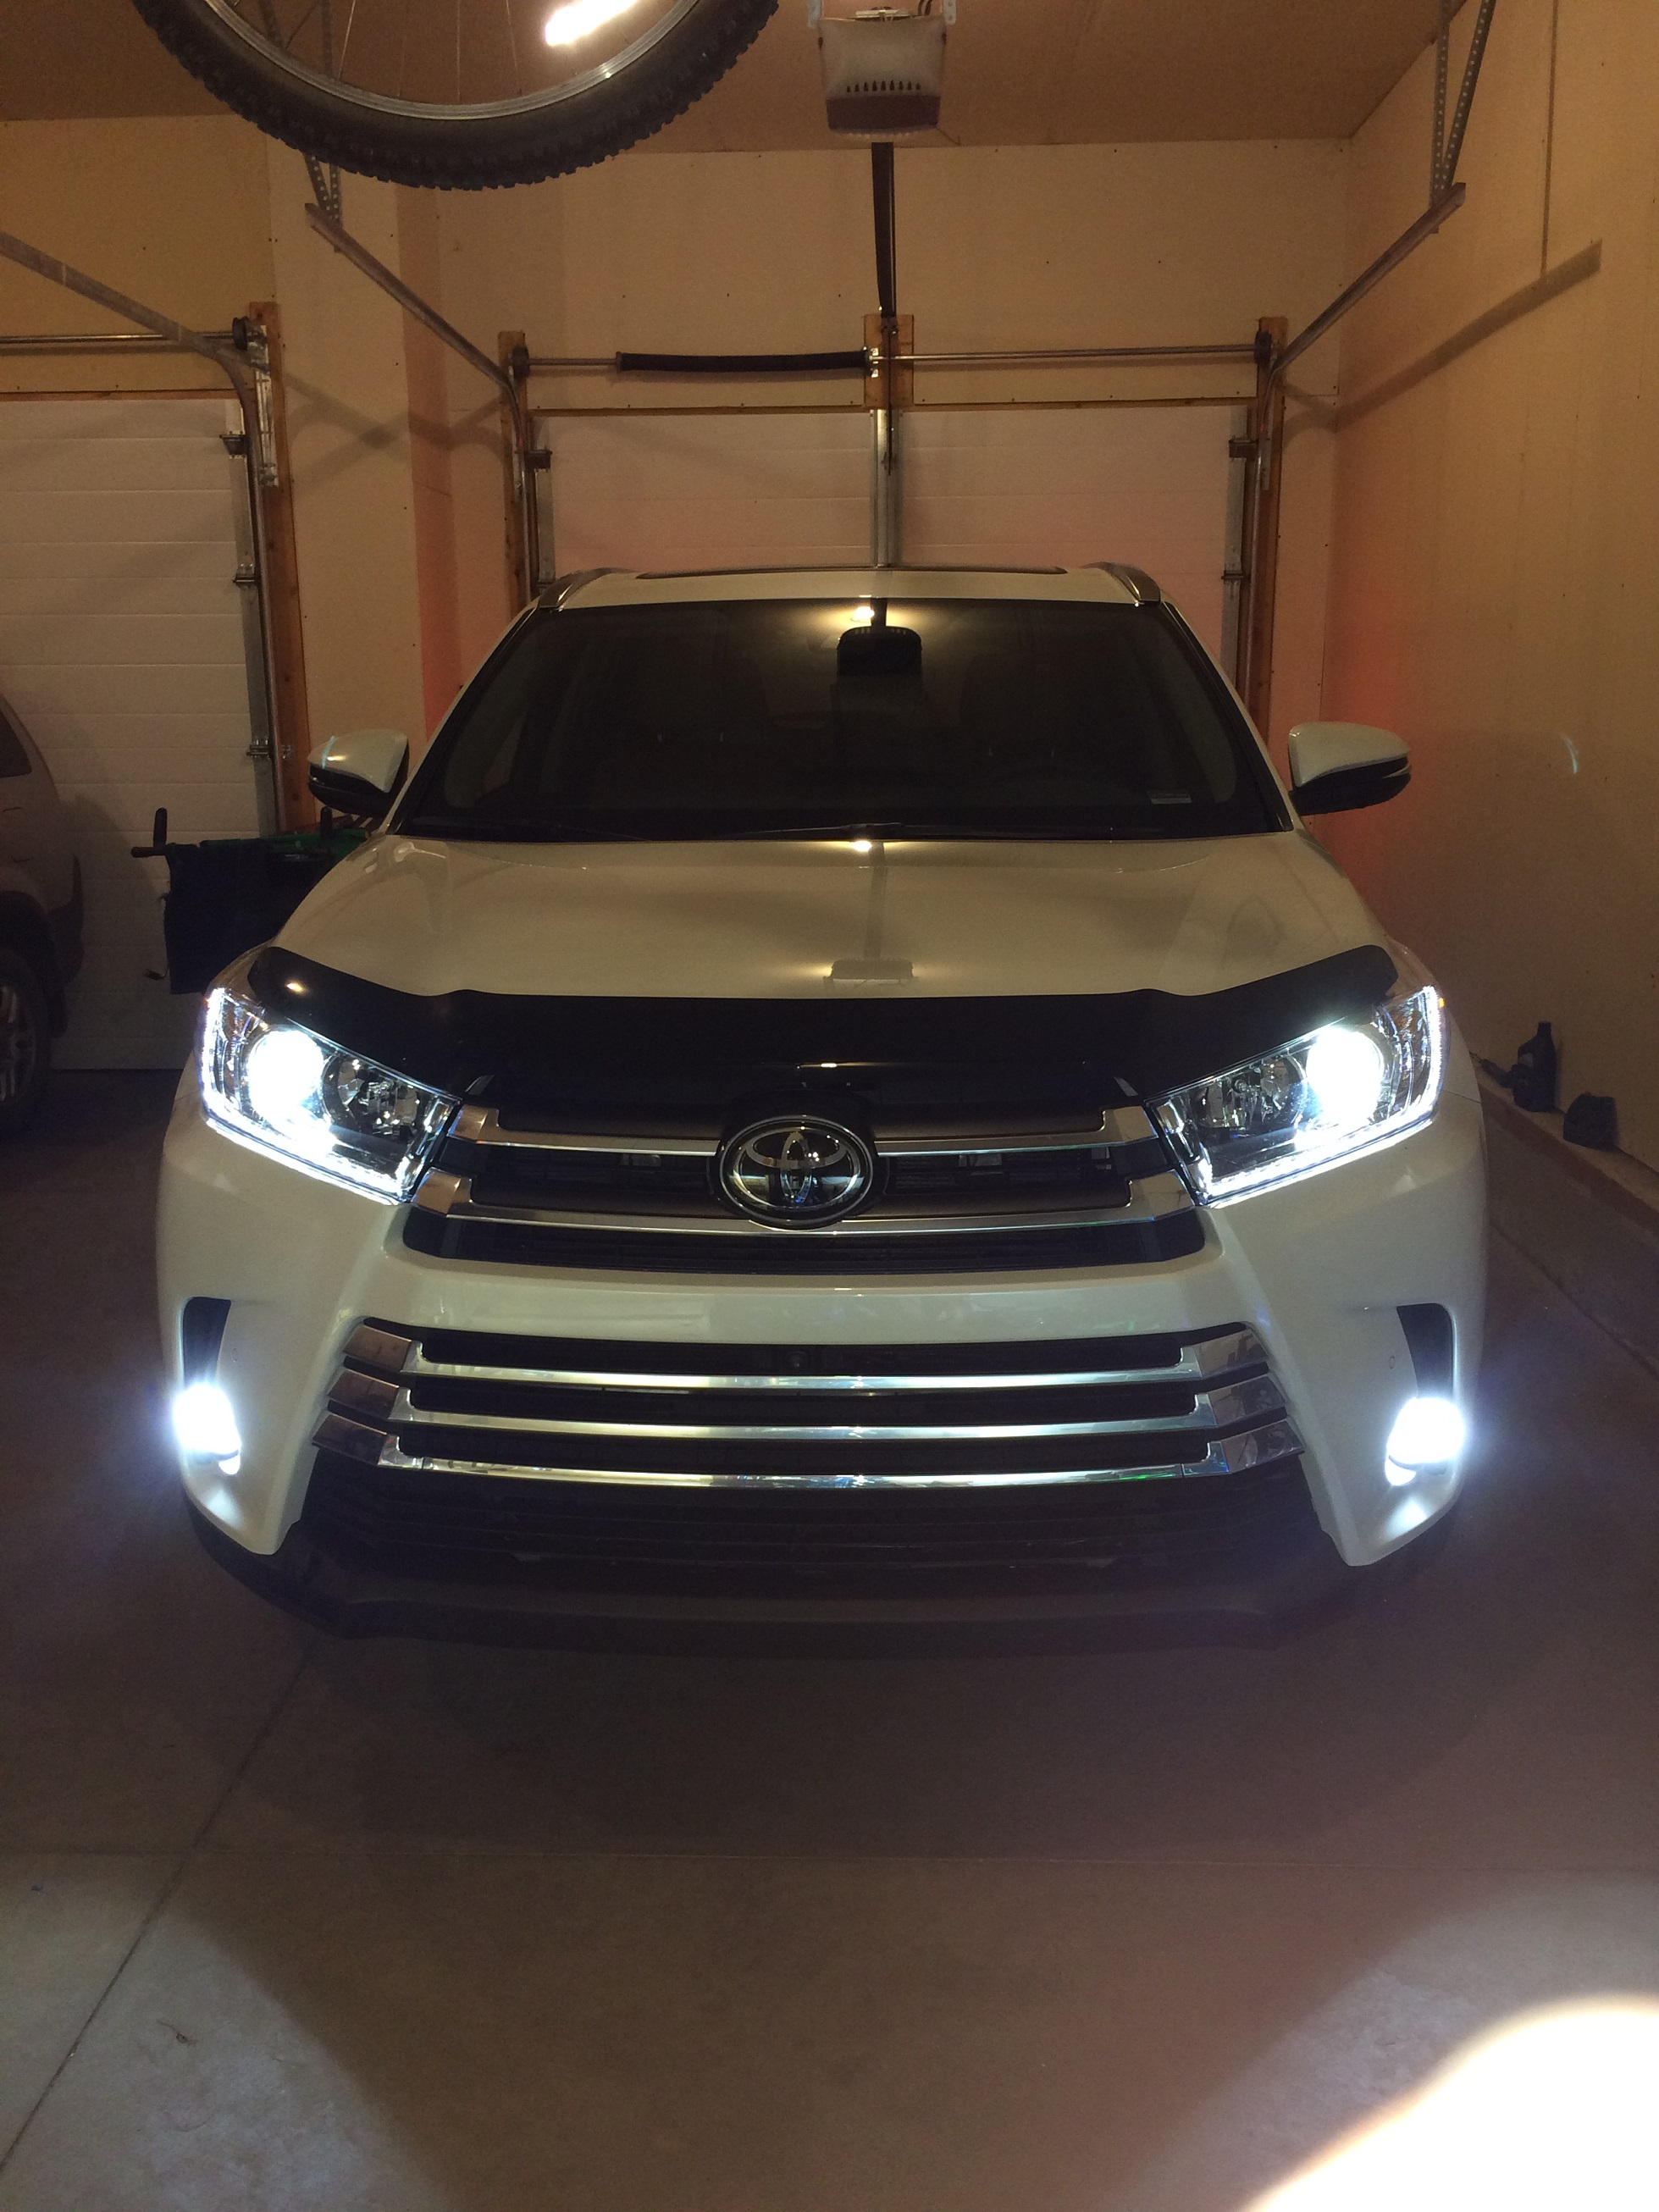 2017 Highlander Led Bulbs Amp Hid Low Beam Conversion Page